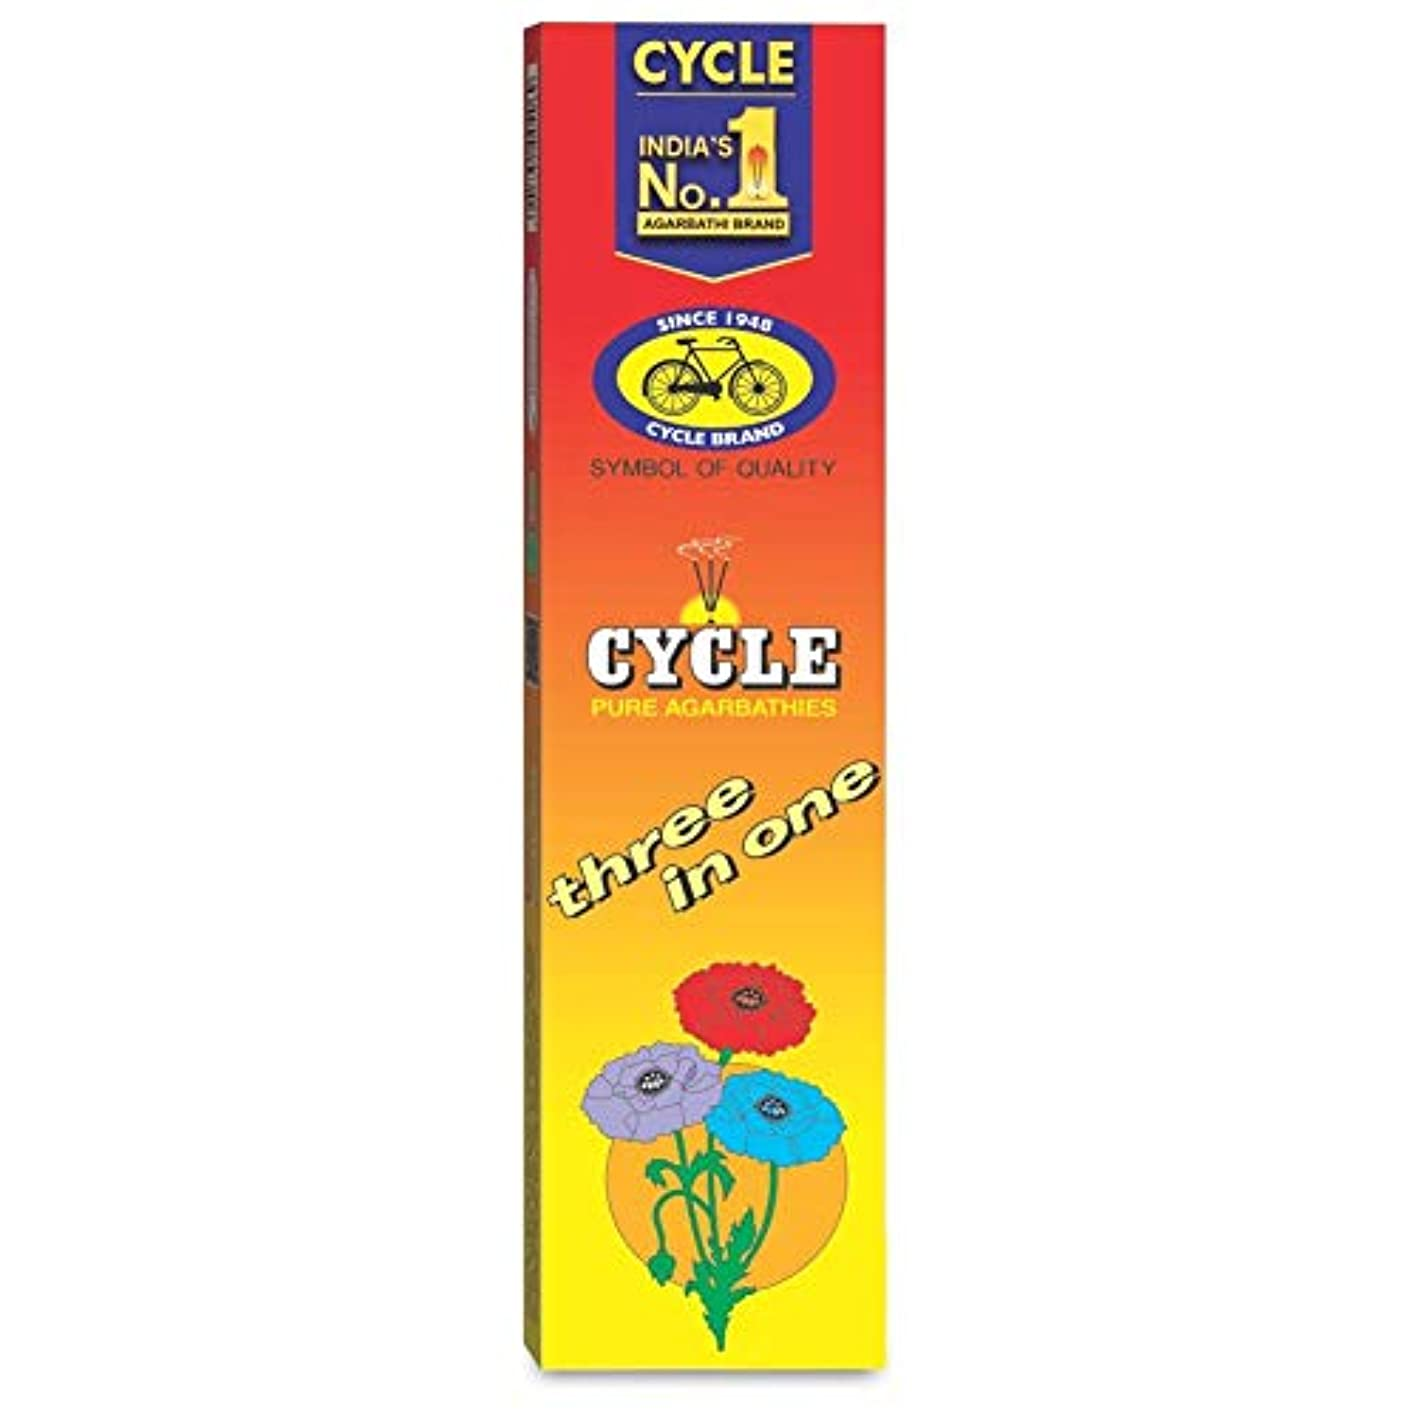 フロント致命的な卒業記念アルバムCycle Pure Agarbathies Three In One Classic Fragrance Incense Sticks - 240 Grams Free Soap Offer